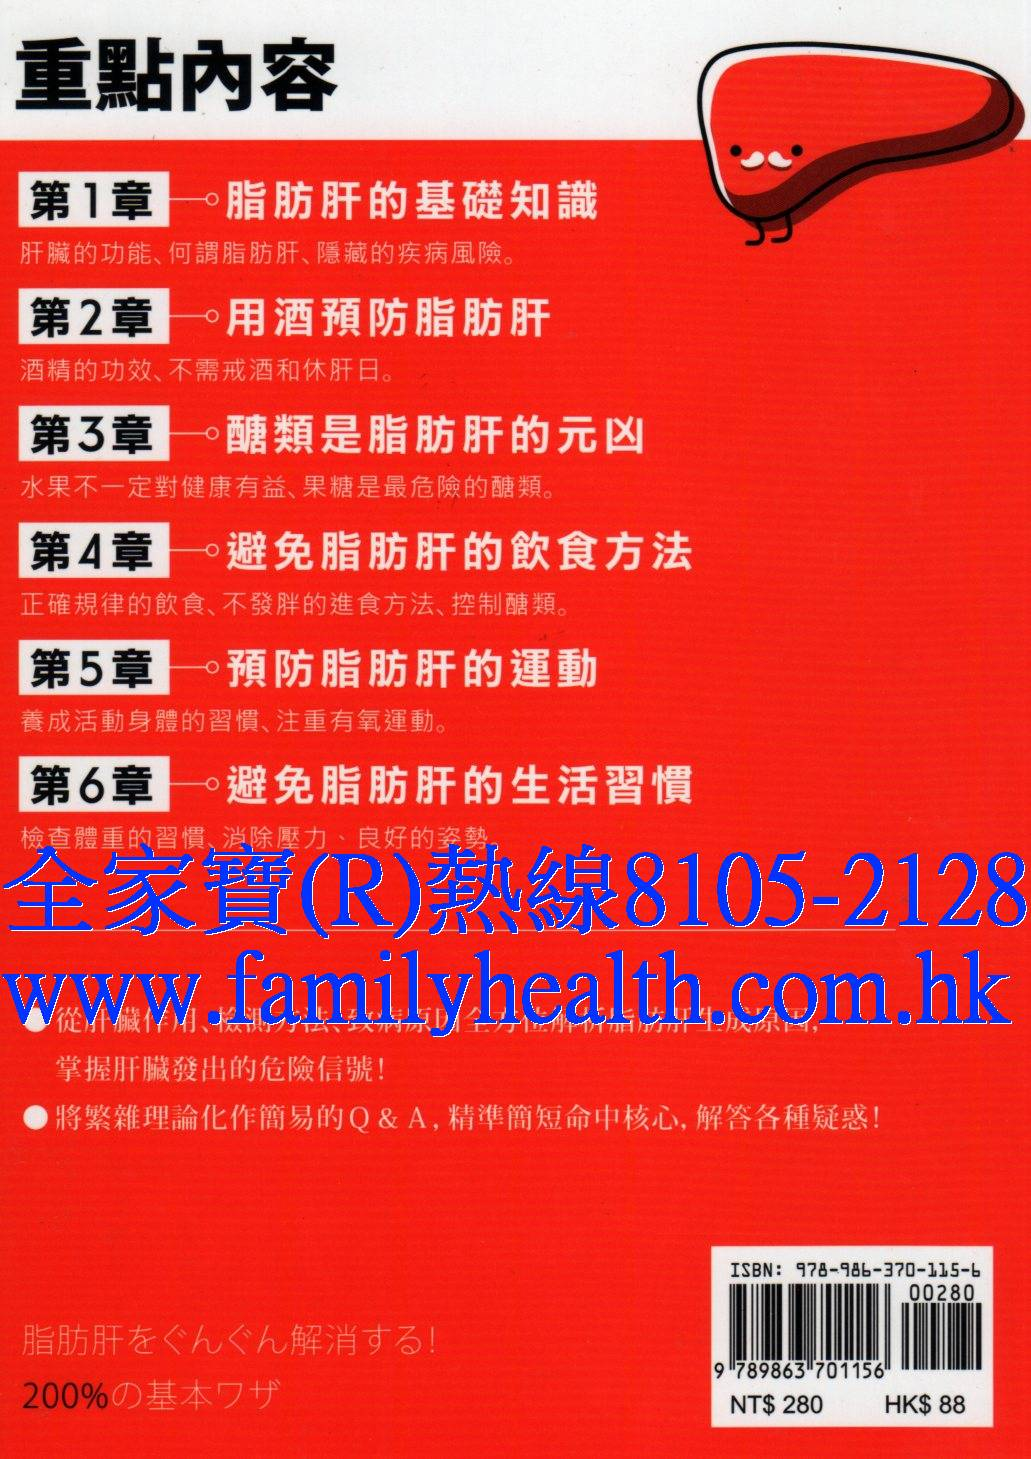 http://www.familyhealth.com.hk/files/full/1056_1.jpg